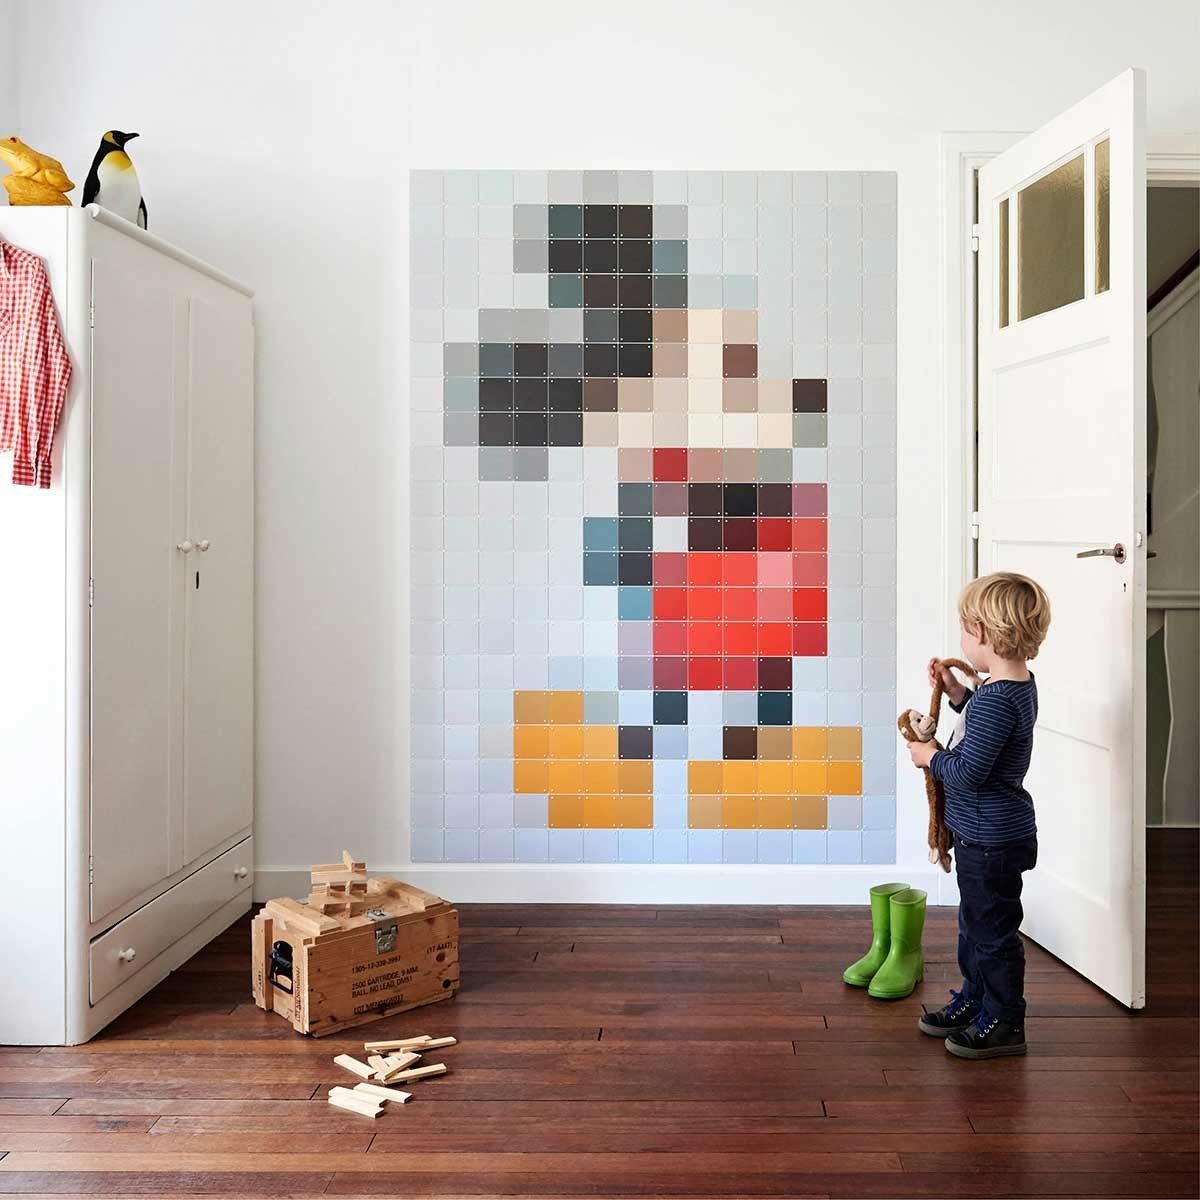 Mickey Mouse Wall Art disney pixel mickey mouse wall artixxi at dotmaison | h.o.m.e